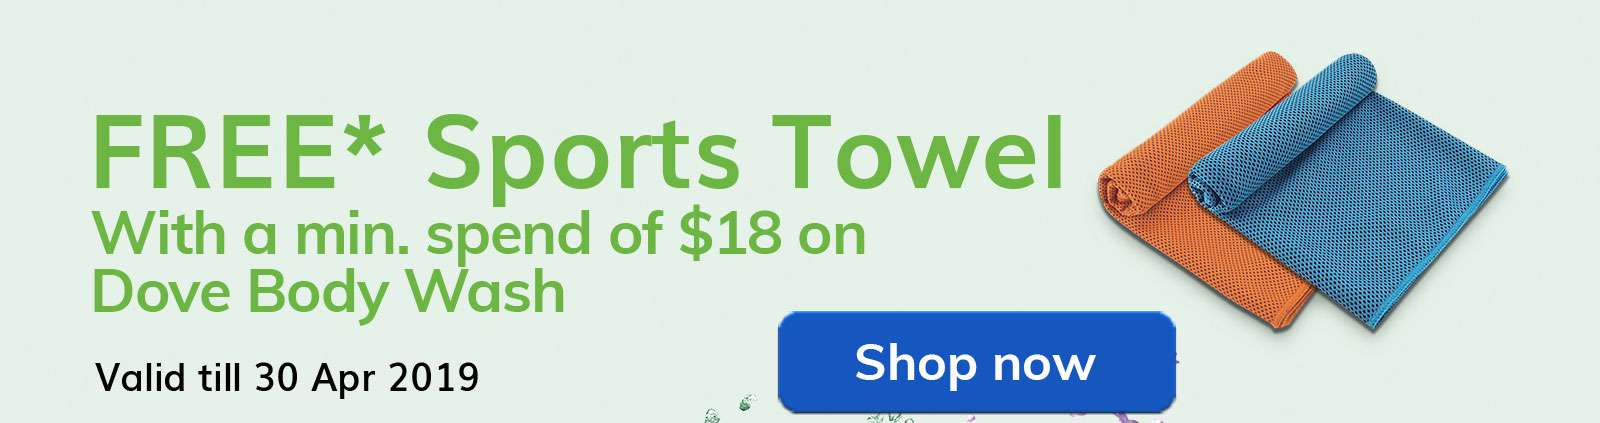 Shop now and get free sports towel